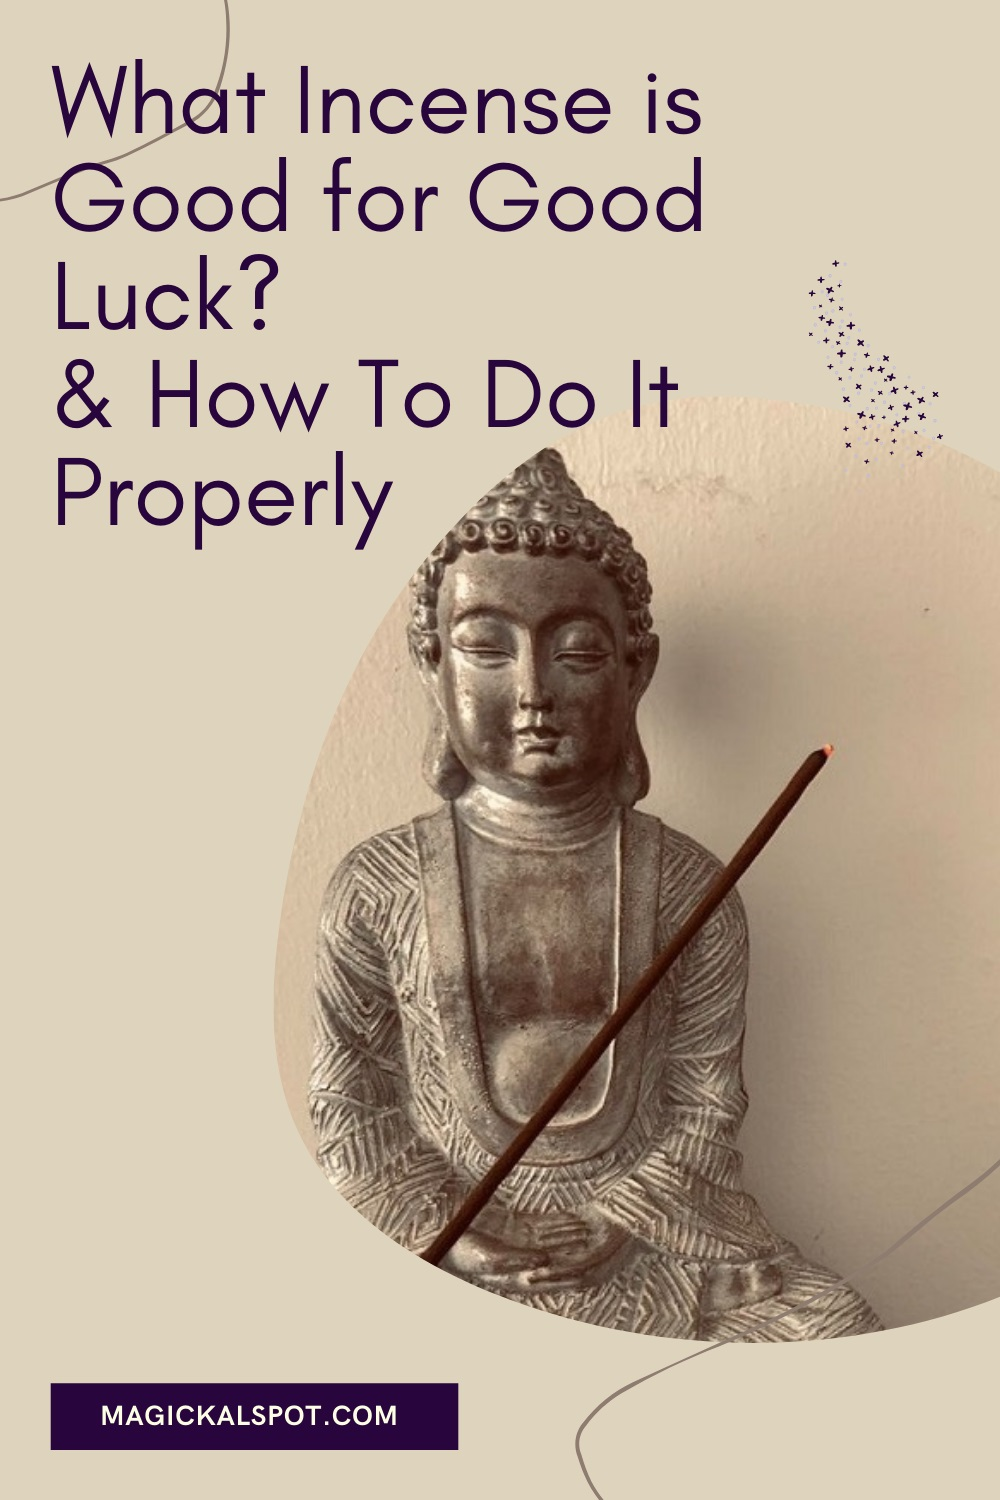 What Incense is Good for Good Luck by Magickal Spot